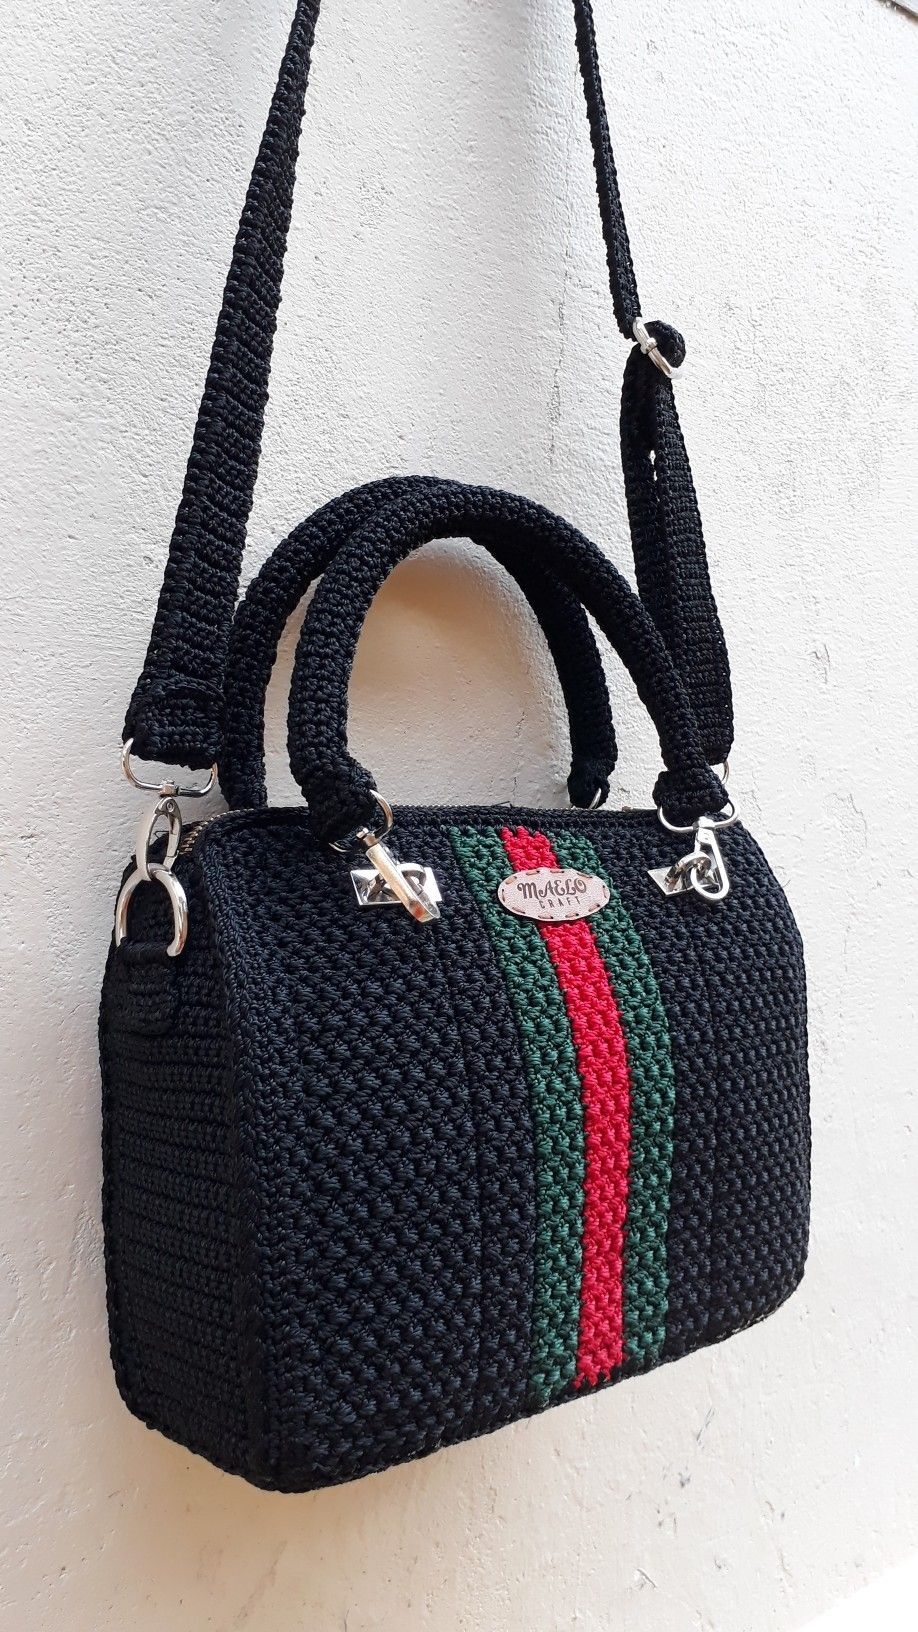 Best 12 Bobble Stitch Handbag Crochet Pattern with Video Tutorial red purse Why spend money on simple bags, when you can make this bobble stitch handbag all by yourself. The place where construction meets design, beaded crochet is the act of using beads to embelD – SkillOfKing.Com #crochetformoney